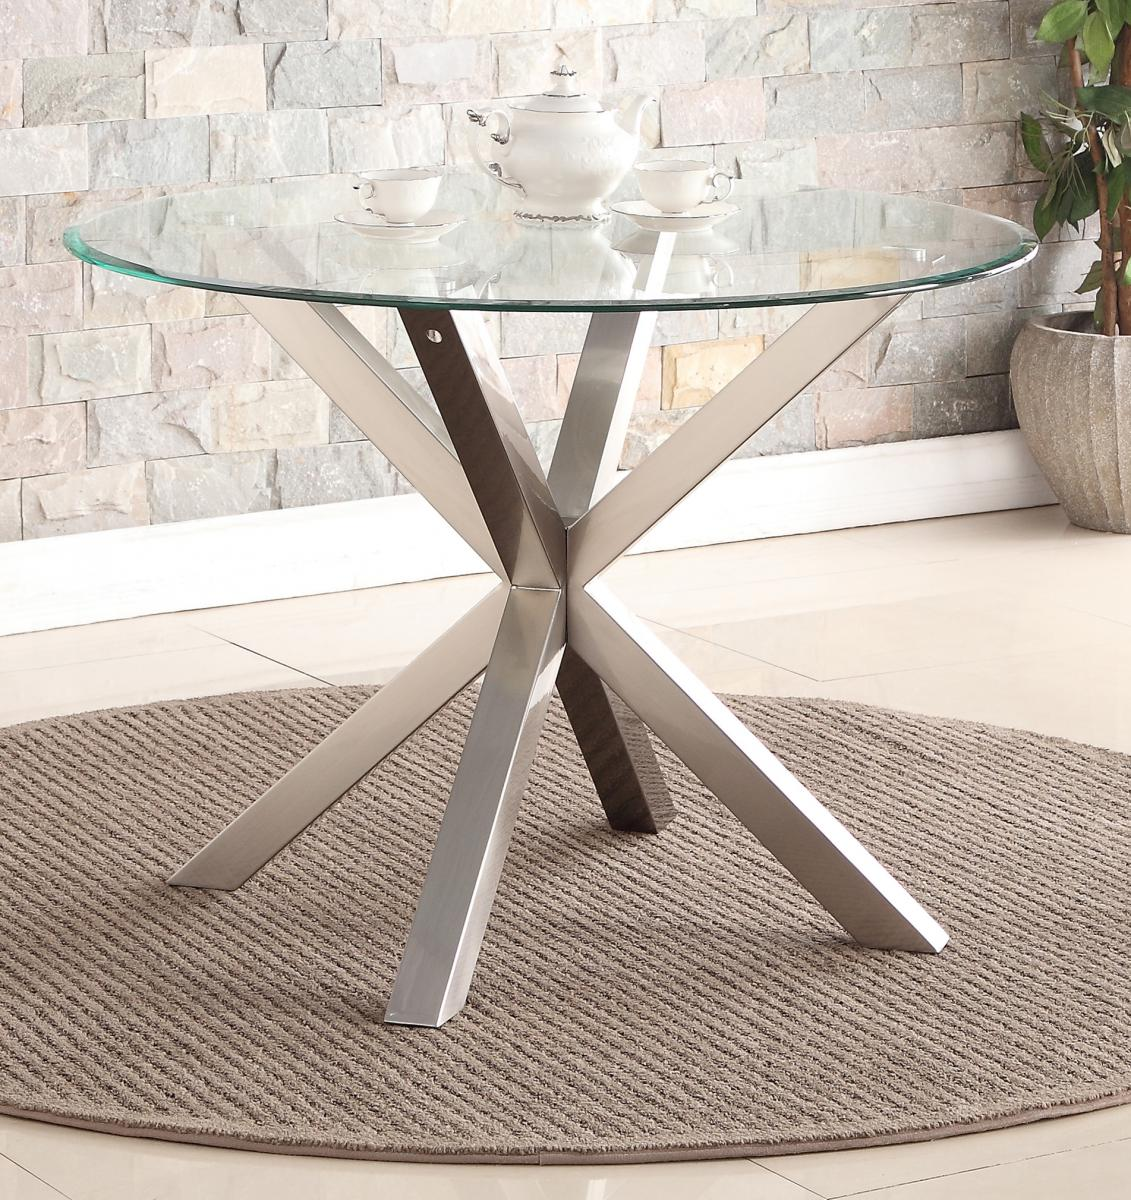 3d Rh Nicholas Round Side And Coffee Modern Tables [ 720 x 1280 Pixel ]